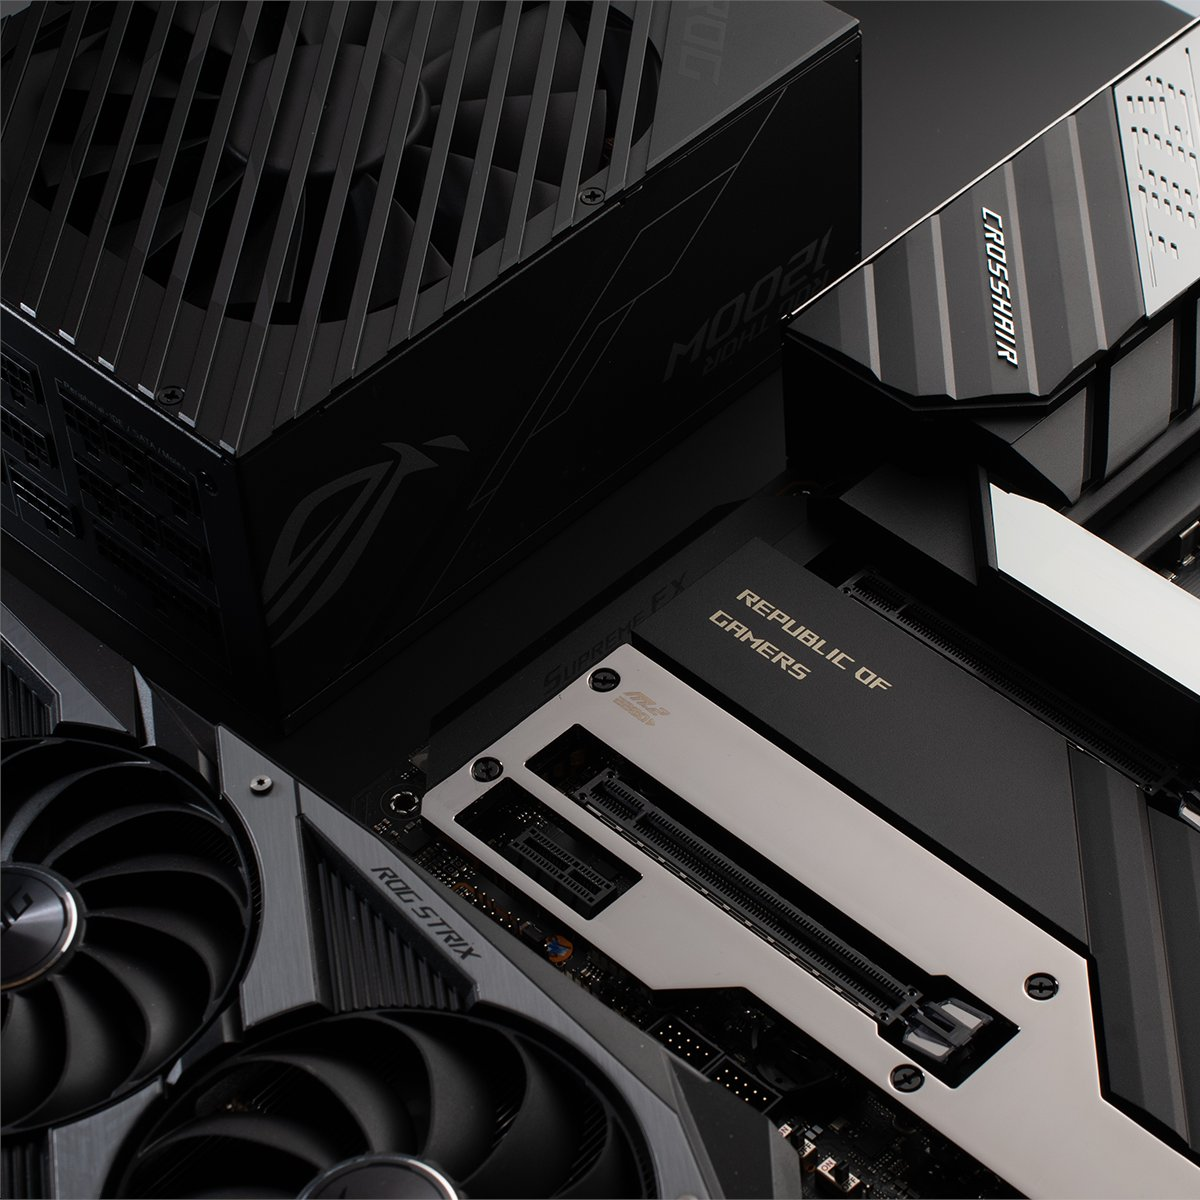 asus-rog-crosshair-viii-extreme-flagship-am4-motherboard-unveiled-–-20-phase-vrm-for-extreme-ryzen-overclocking